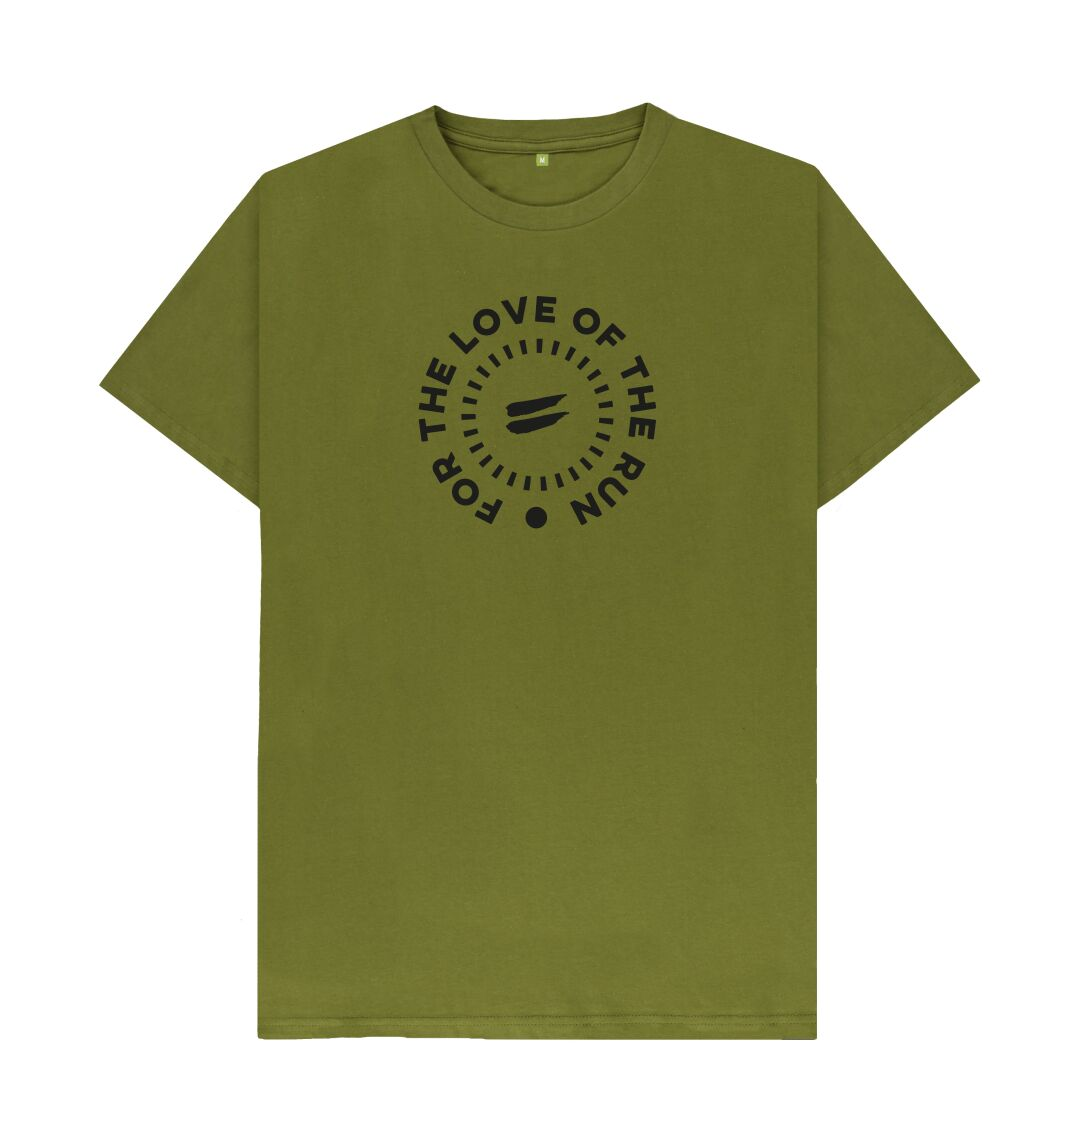 Moss Green For the Love of the Run Tee - Men's